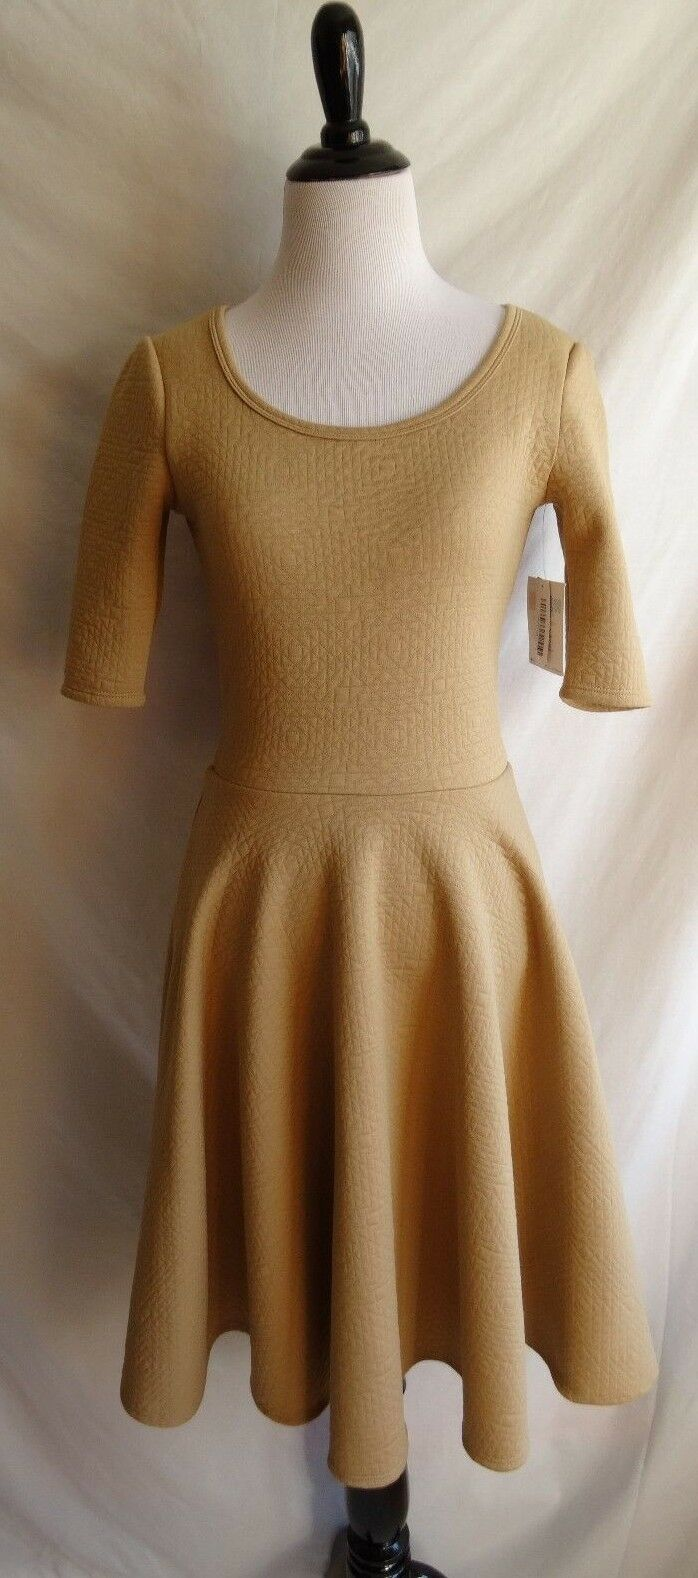 NWT Lularoe Size XS Solid Tan Khaki Light Brown Quilted Nicole Party Dress